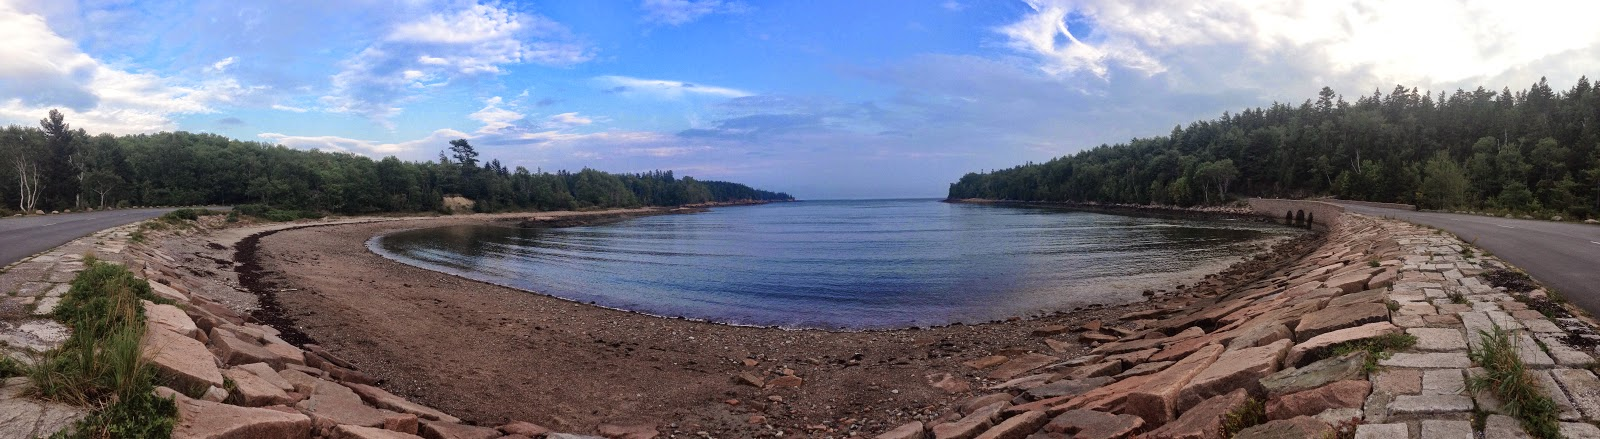 Tigho NYDucati: Maine-ly Ducati Weekend to Acadia National Park